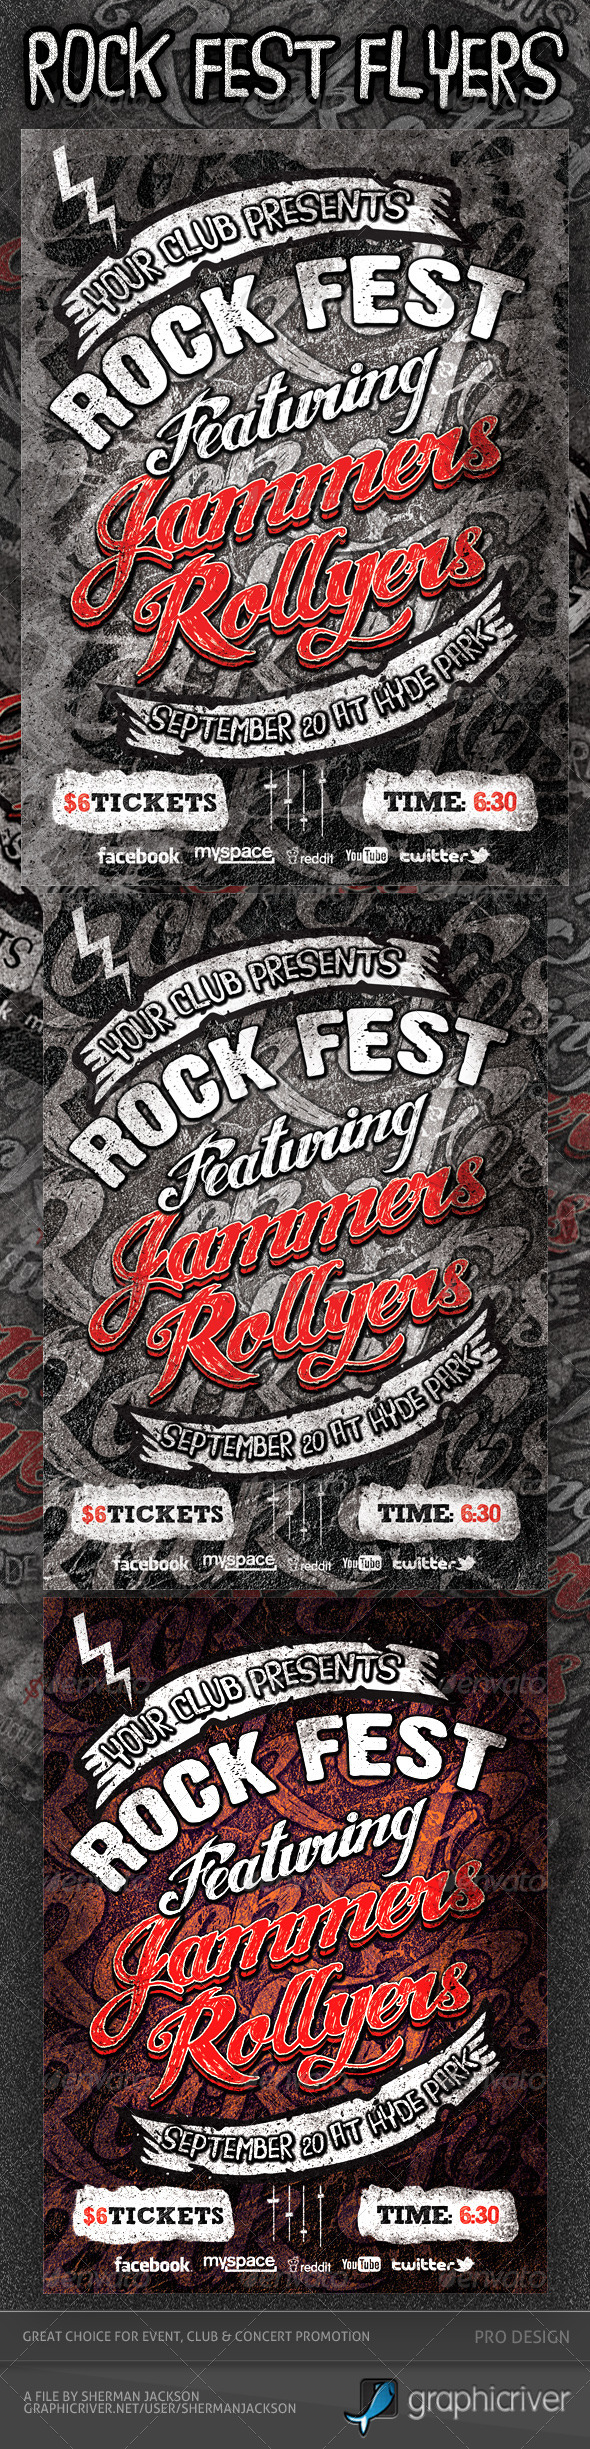 Rock Fest Typographic Flyer PSD Template - Events Flyers